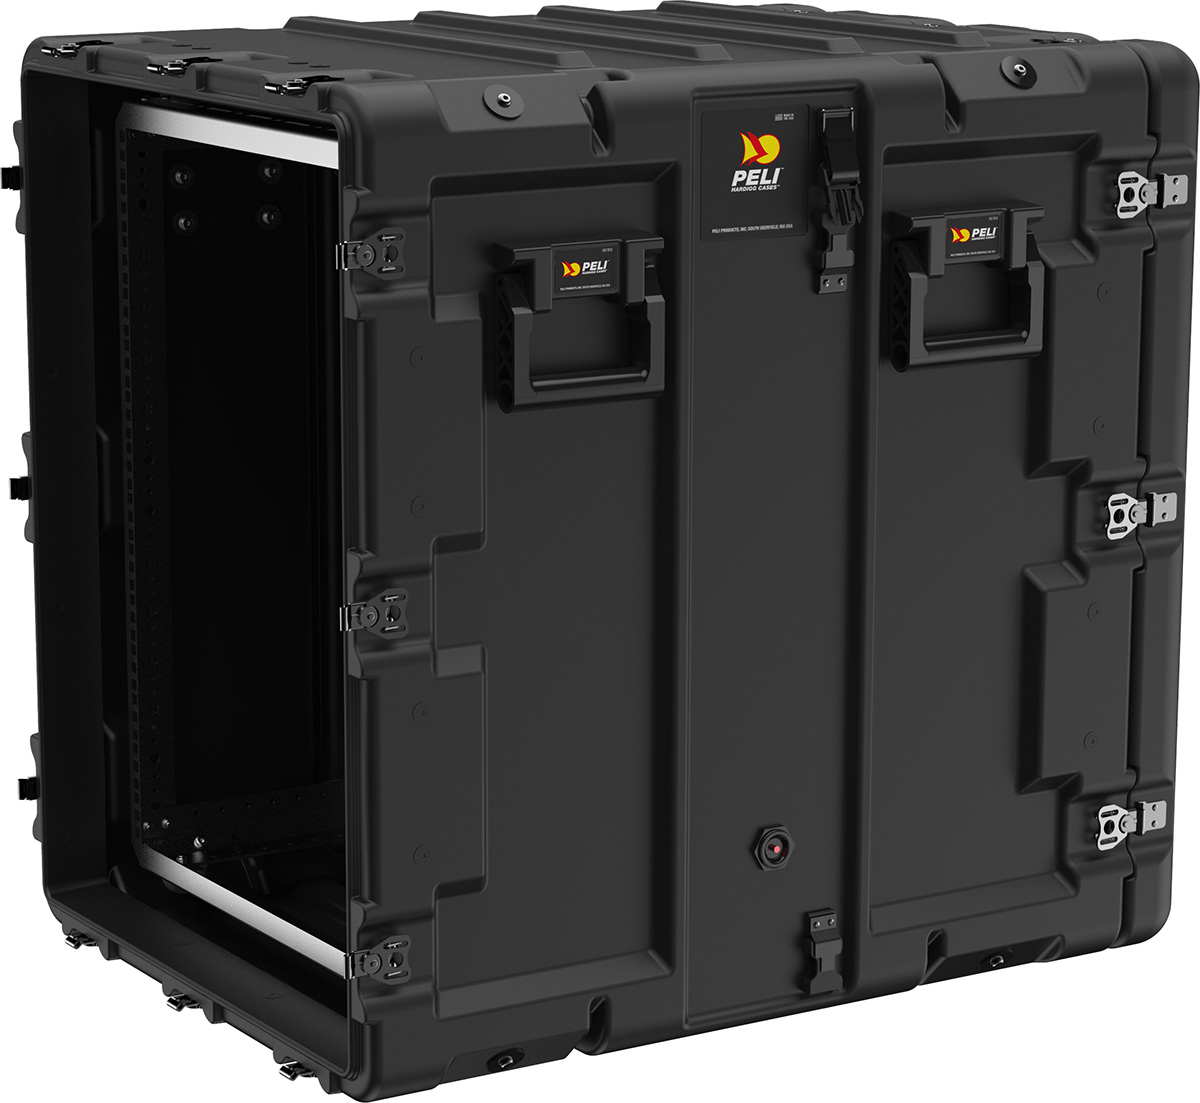 peli super-v-series-14u super v series 14u rack mount case